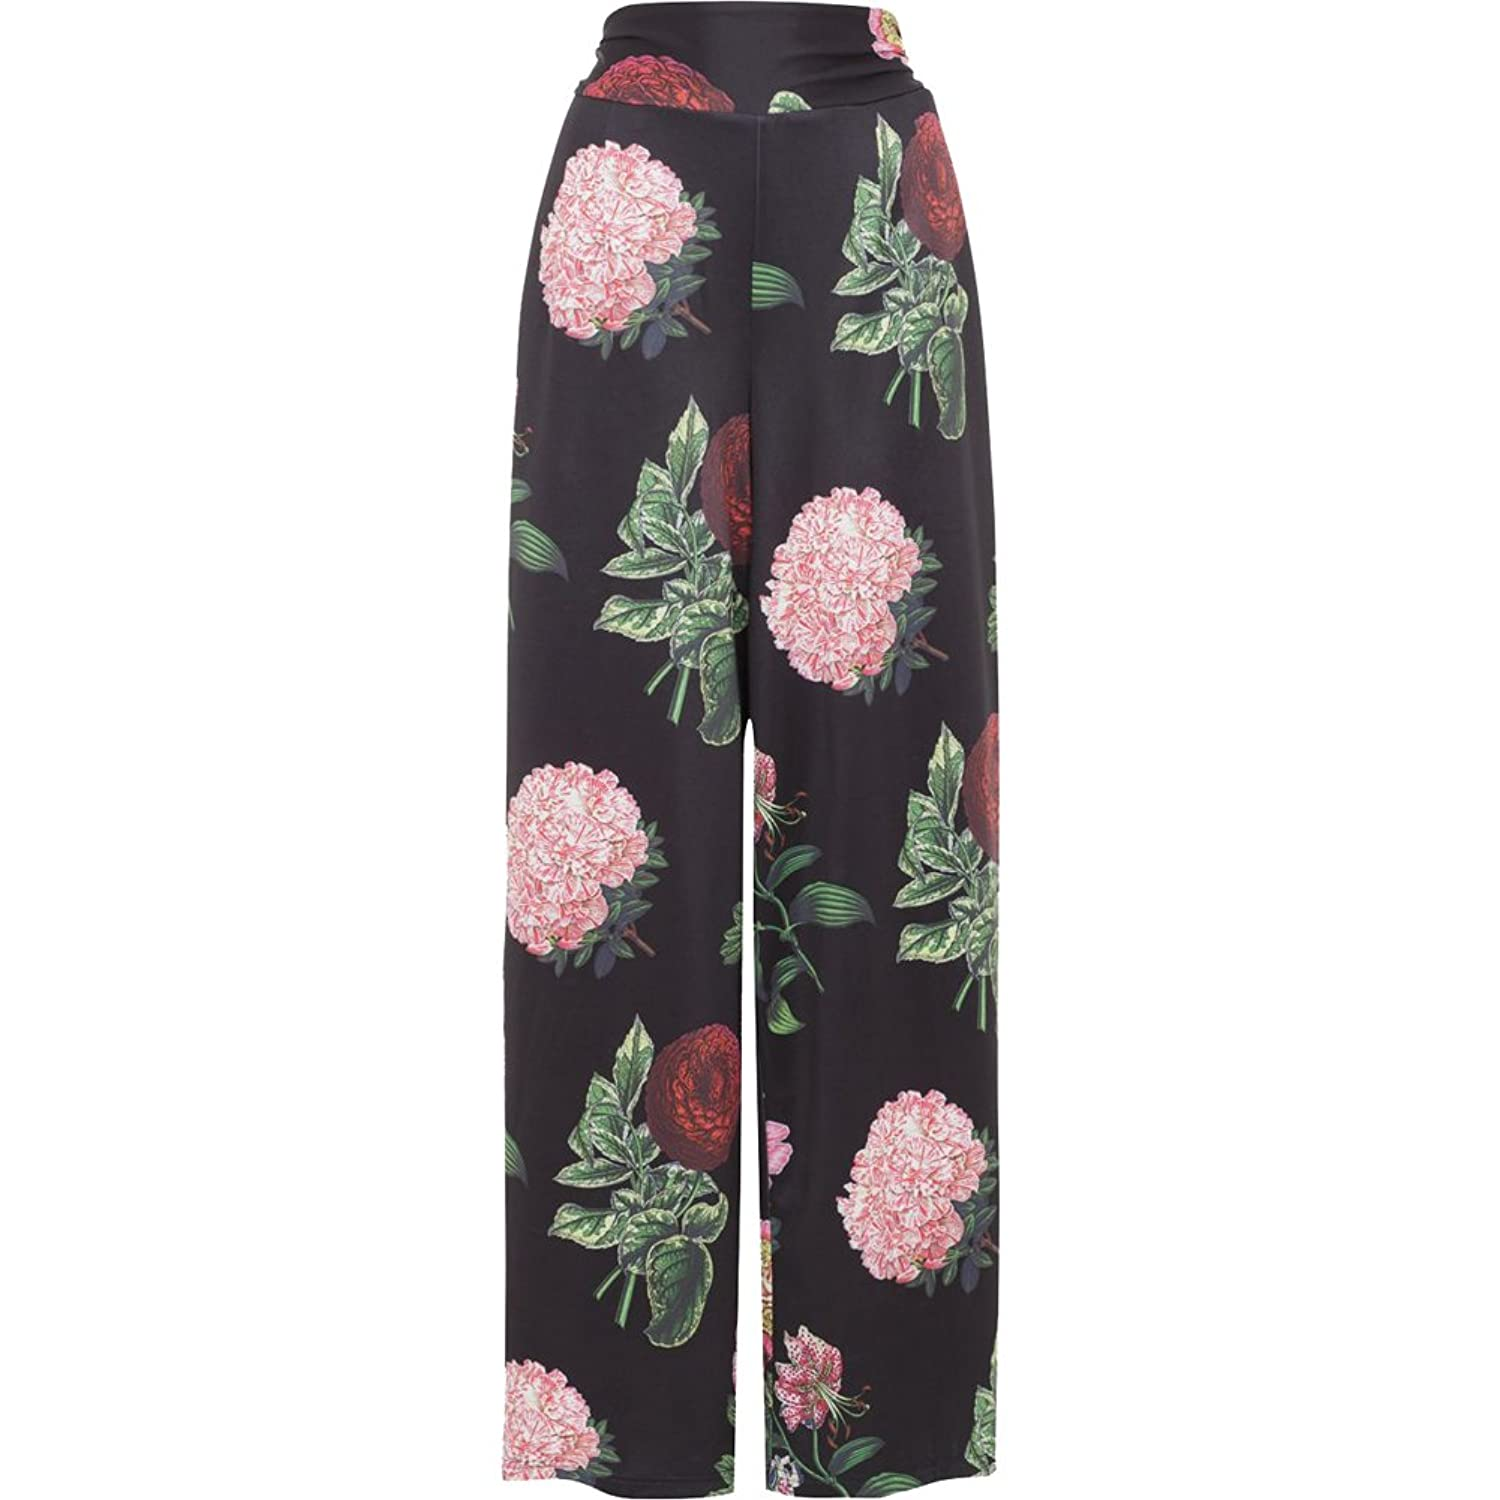 1920s Skirts, Gatsby Skirts, Vintage Pleated Skirts  NATALIA Large Vintage Floral Print Pants Black $57.99 AT vintagedancer.com